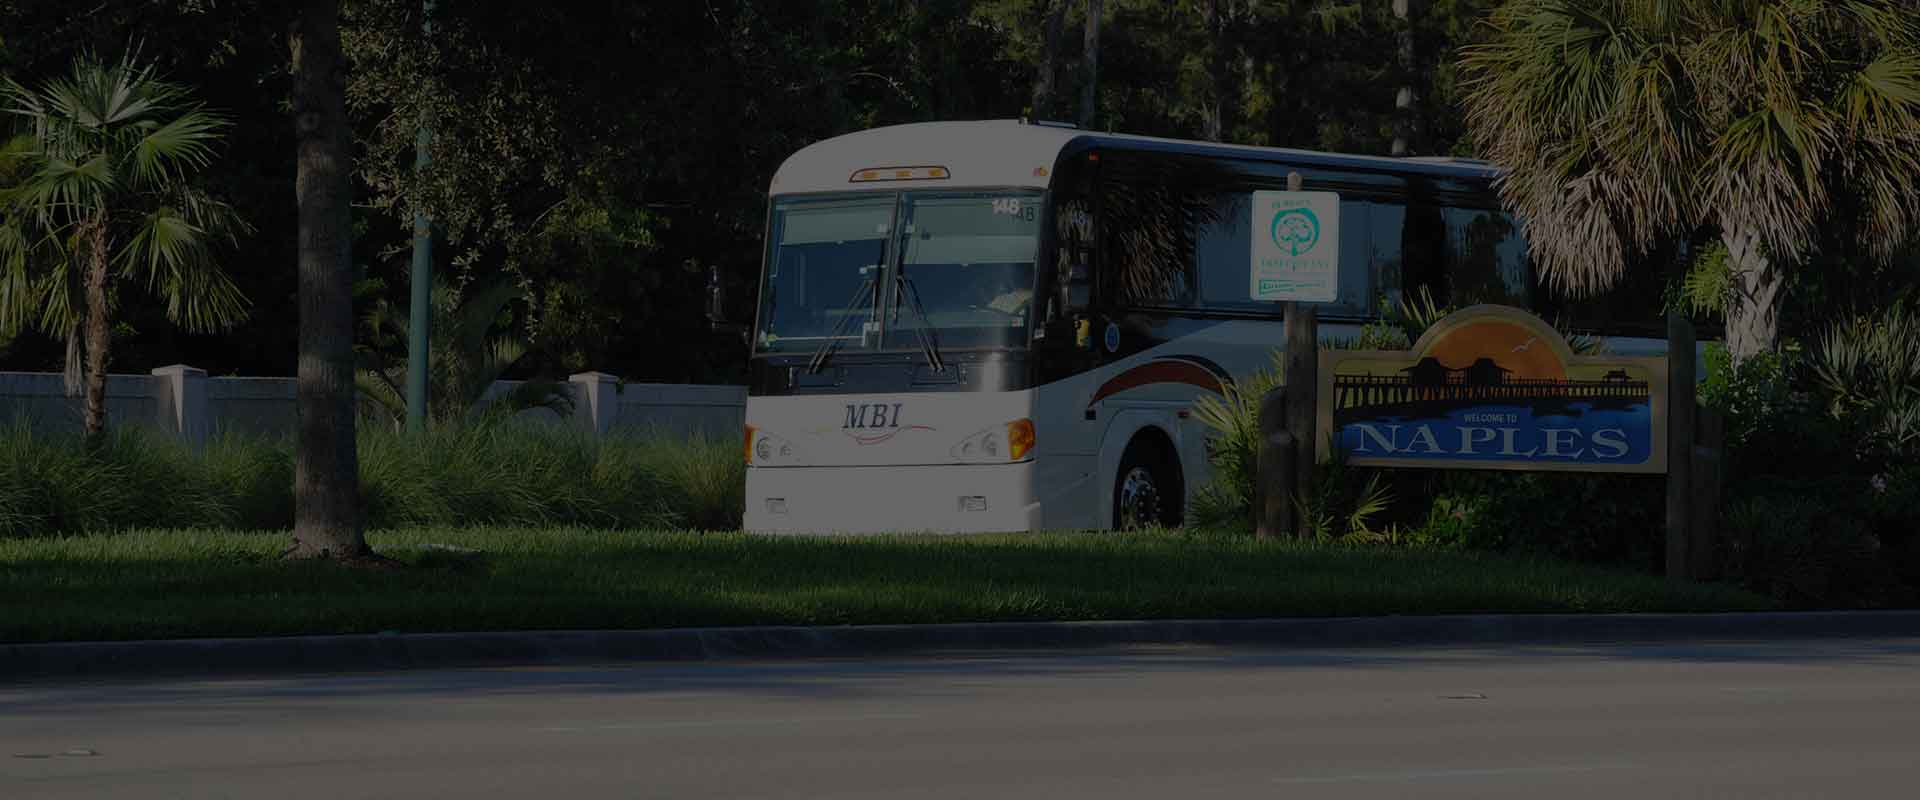 MBI Charters Motorcoach Transportation Rental in Naples, Florida - MBI Charters